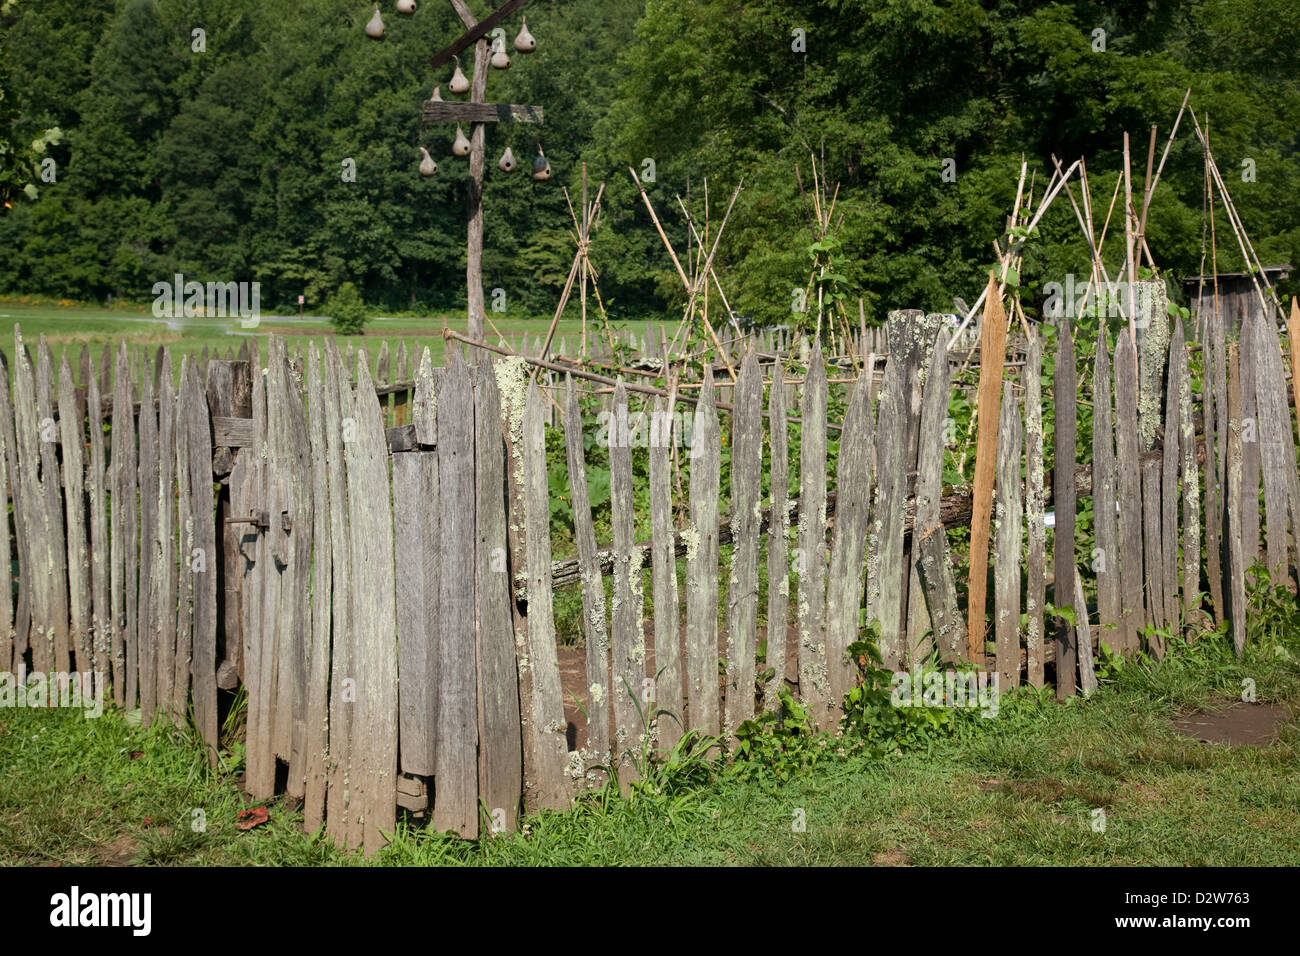 Little Rustic Garden With A Rough, Hand Made Fence Around It, In Sunshine  With